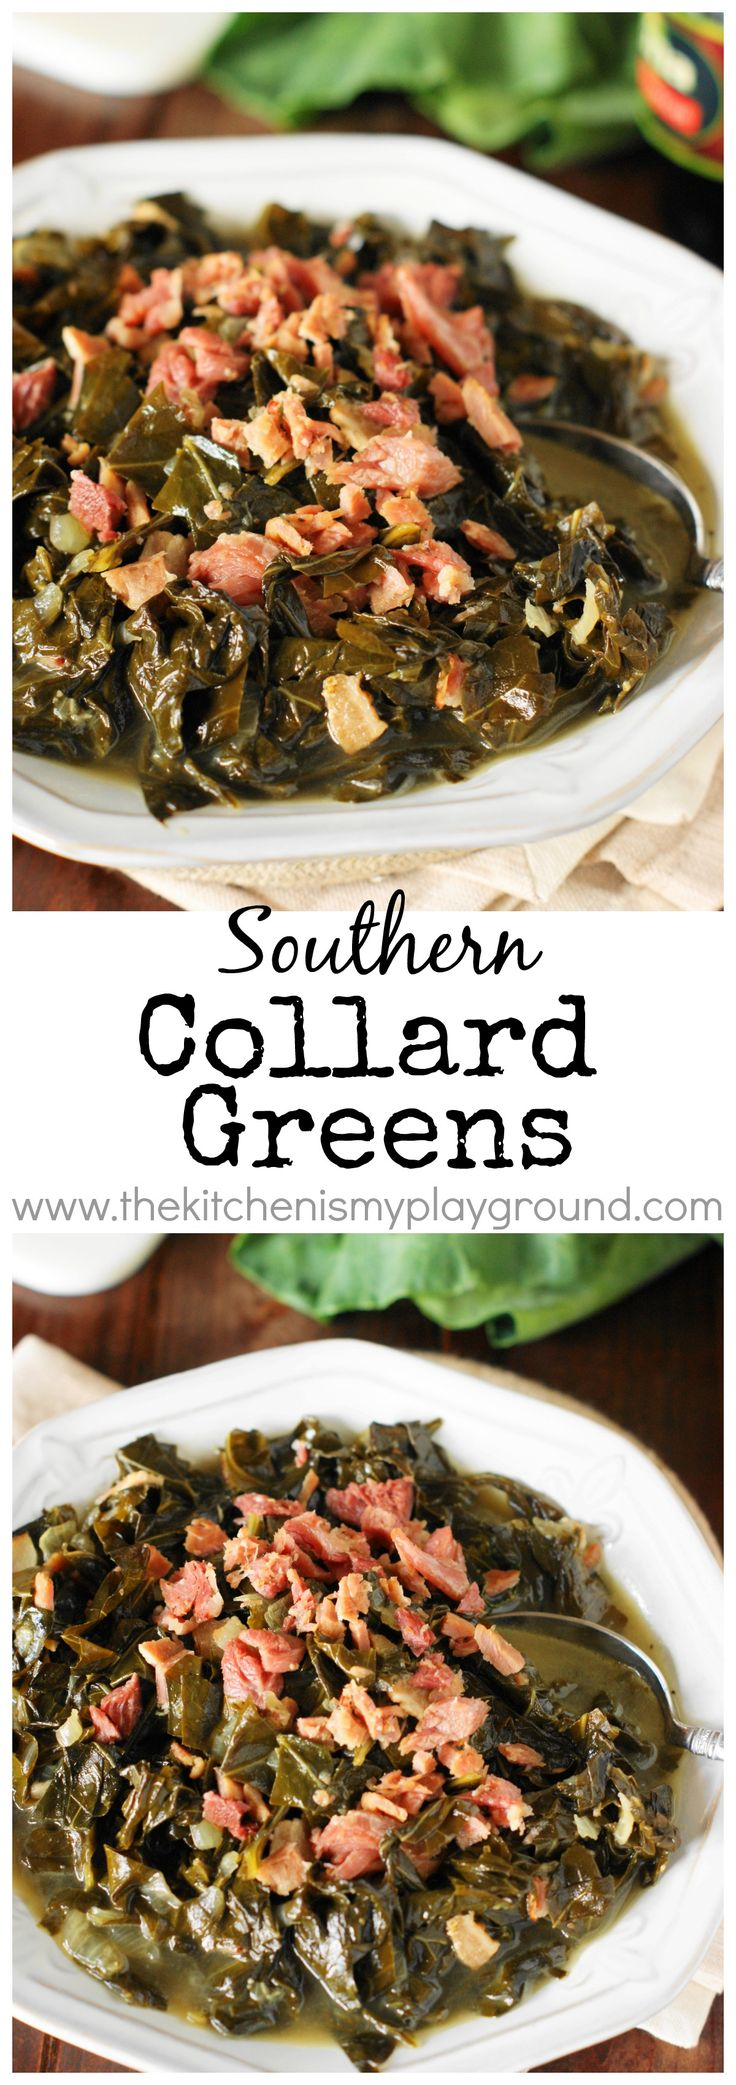 Southern Collard Greens ~ Enjoy tender, tasty #collards for New Year's Day or ANY day of the year! #collardgreens #NewYears #Southerncooking   www.thekitchenismyplayground.com